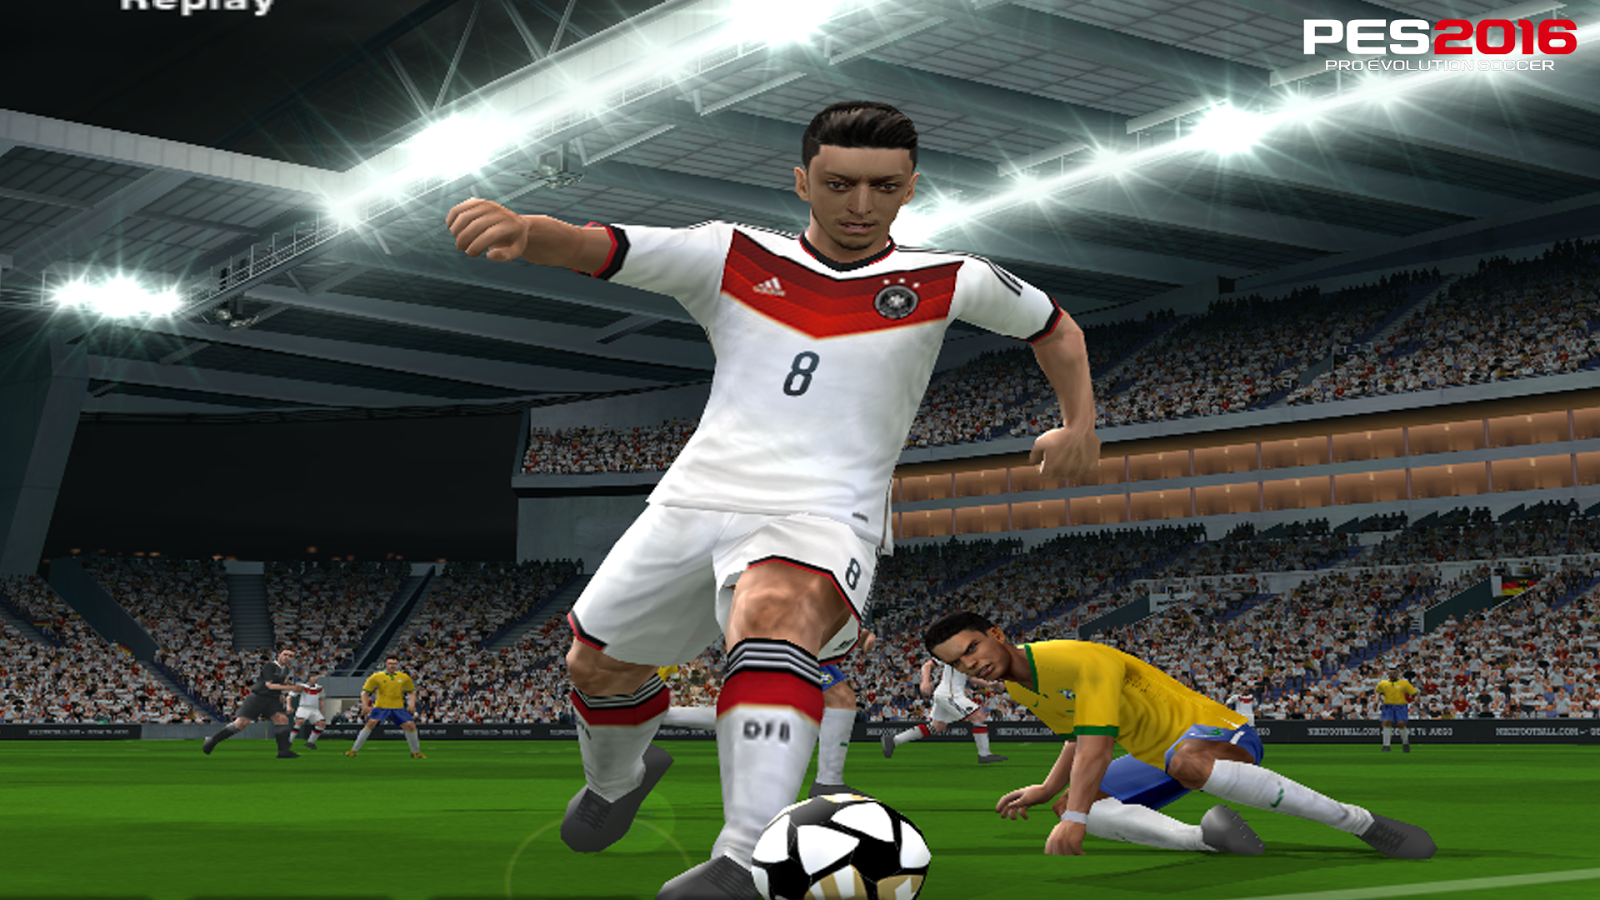 Download Pes 2016 Ps2 Official By Makdad Multi Language